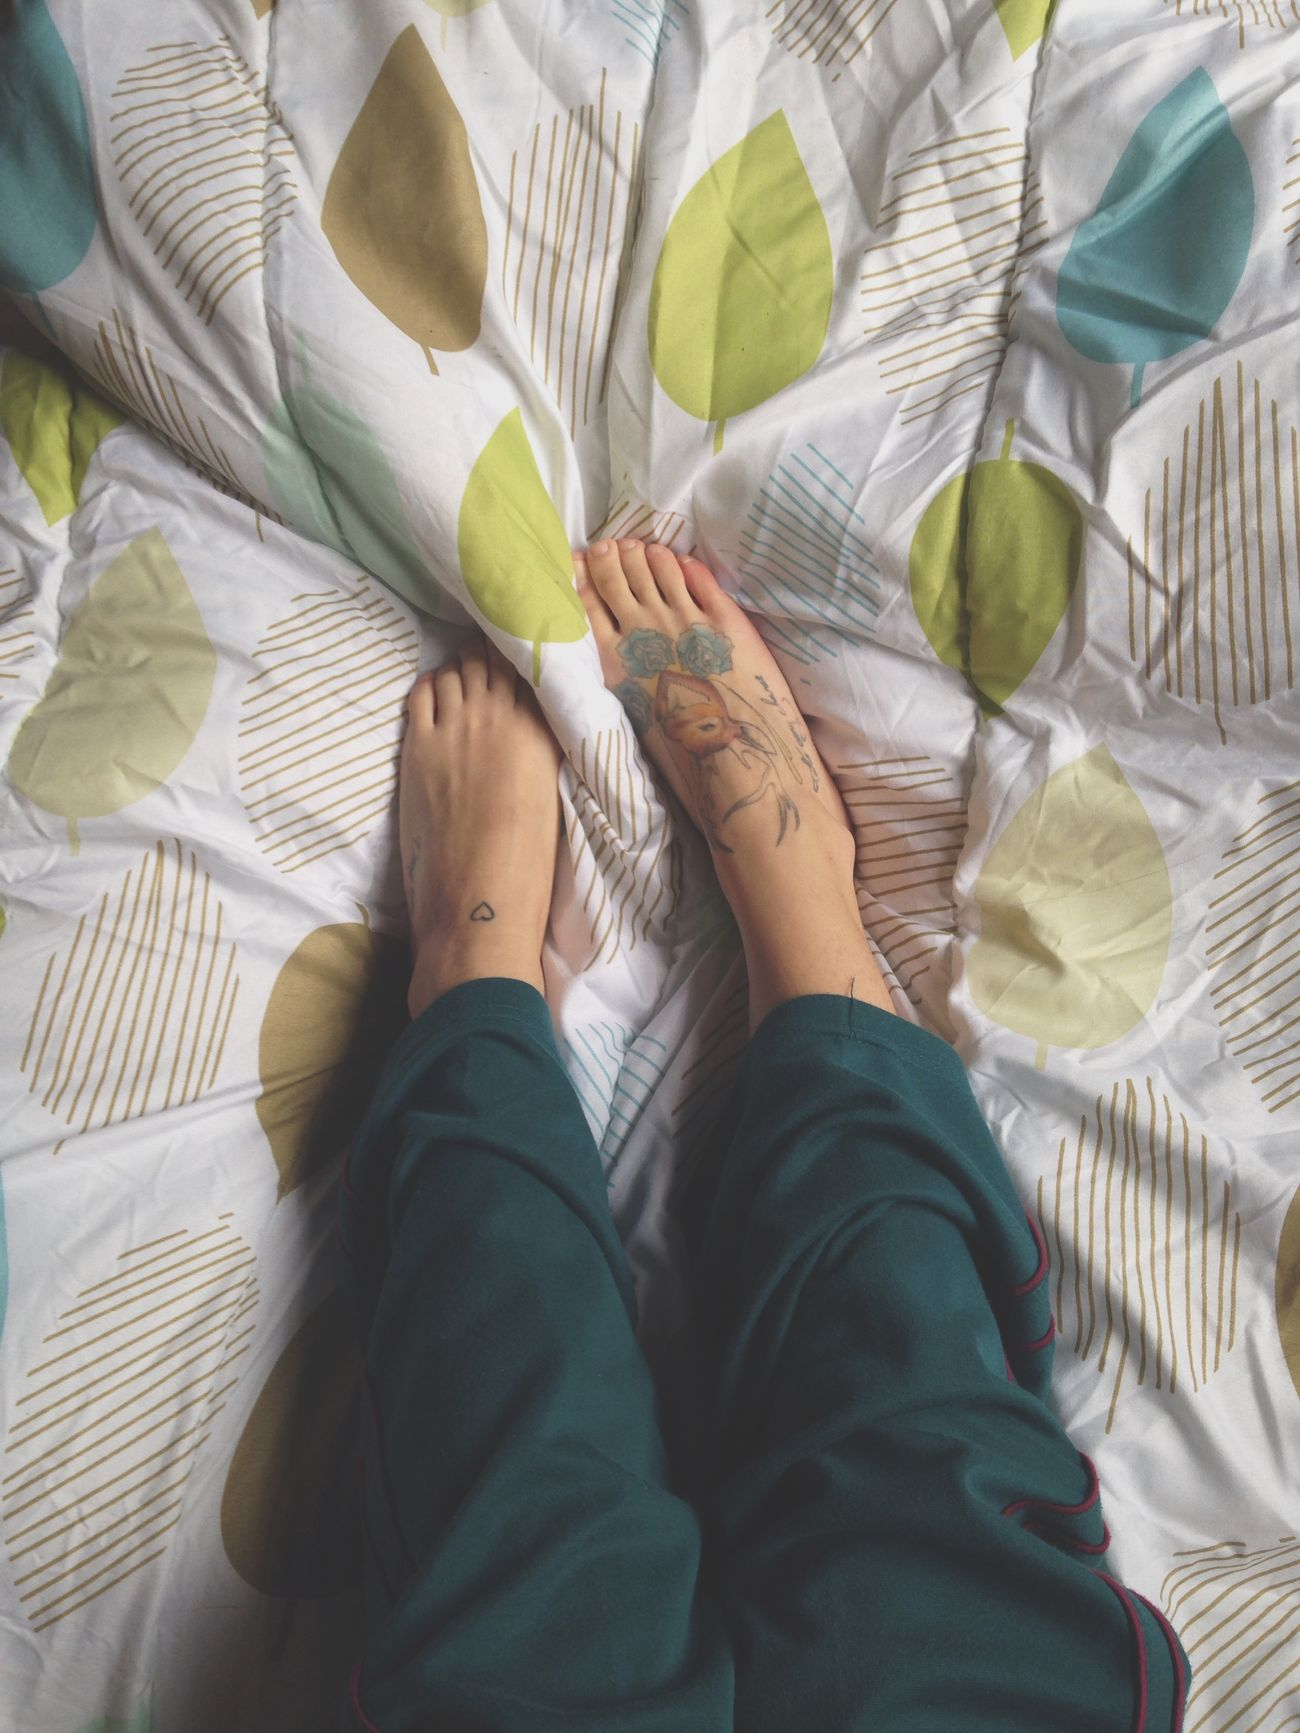 Feet Tattoo Inked Inkedgirls Bed Comfy  Cold Cute Thehumancondition Thehumanbody